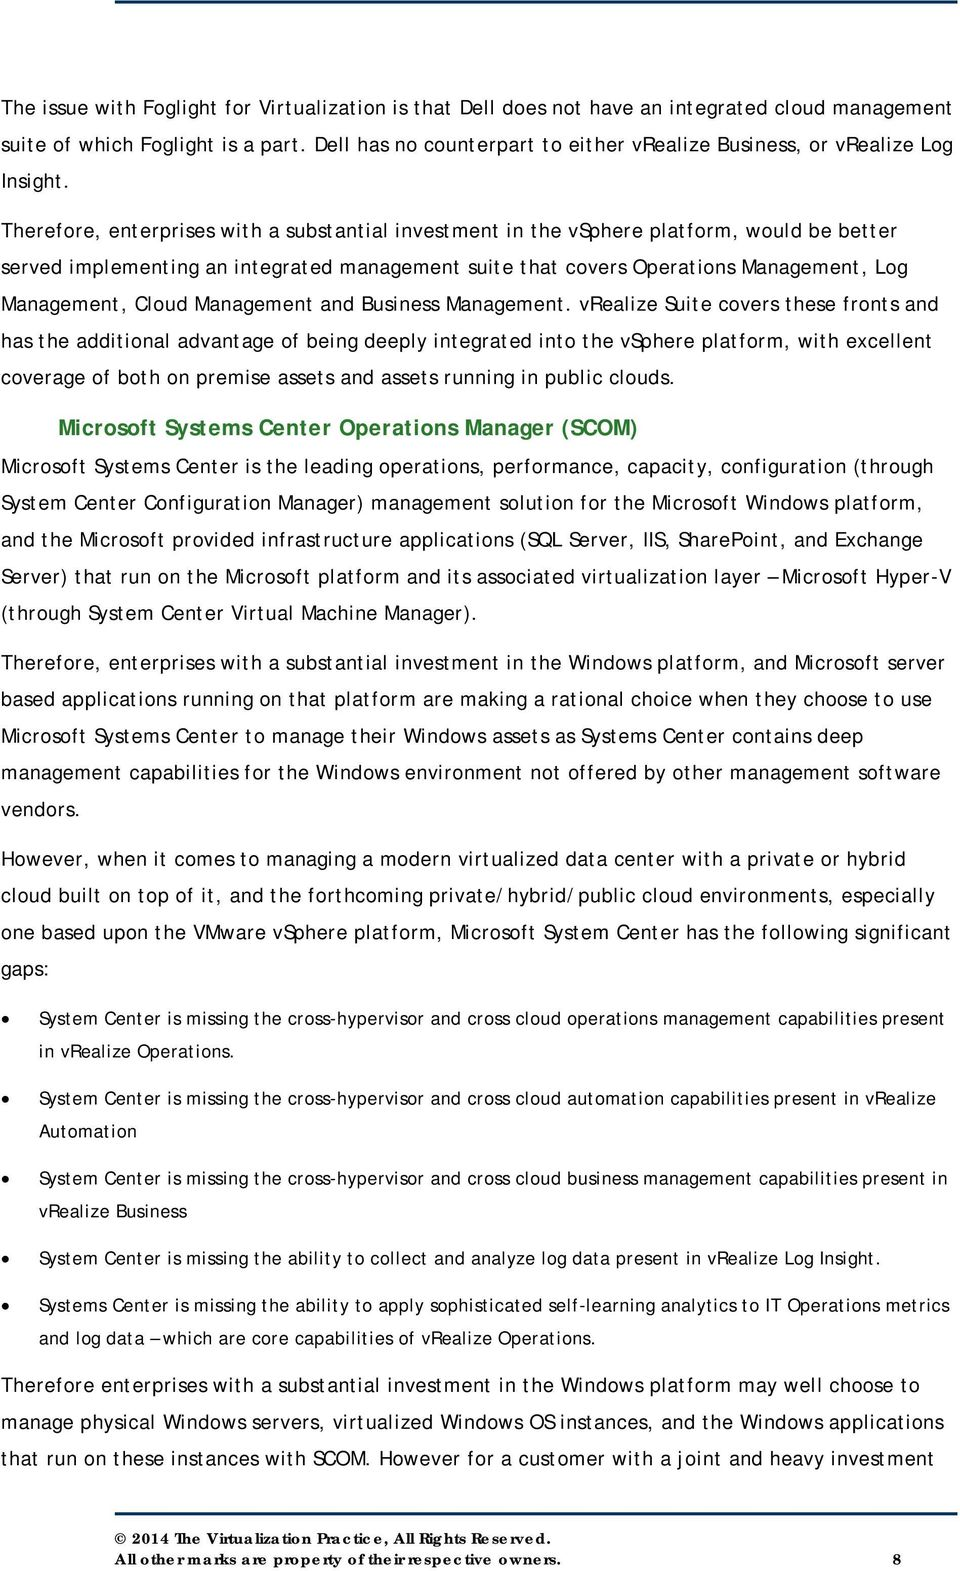 Therefore, enterprises with a substantial investment in the vsphere platform, would be better served implementing an integrated management suite that covers Operations Management, Log Management,